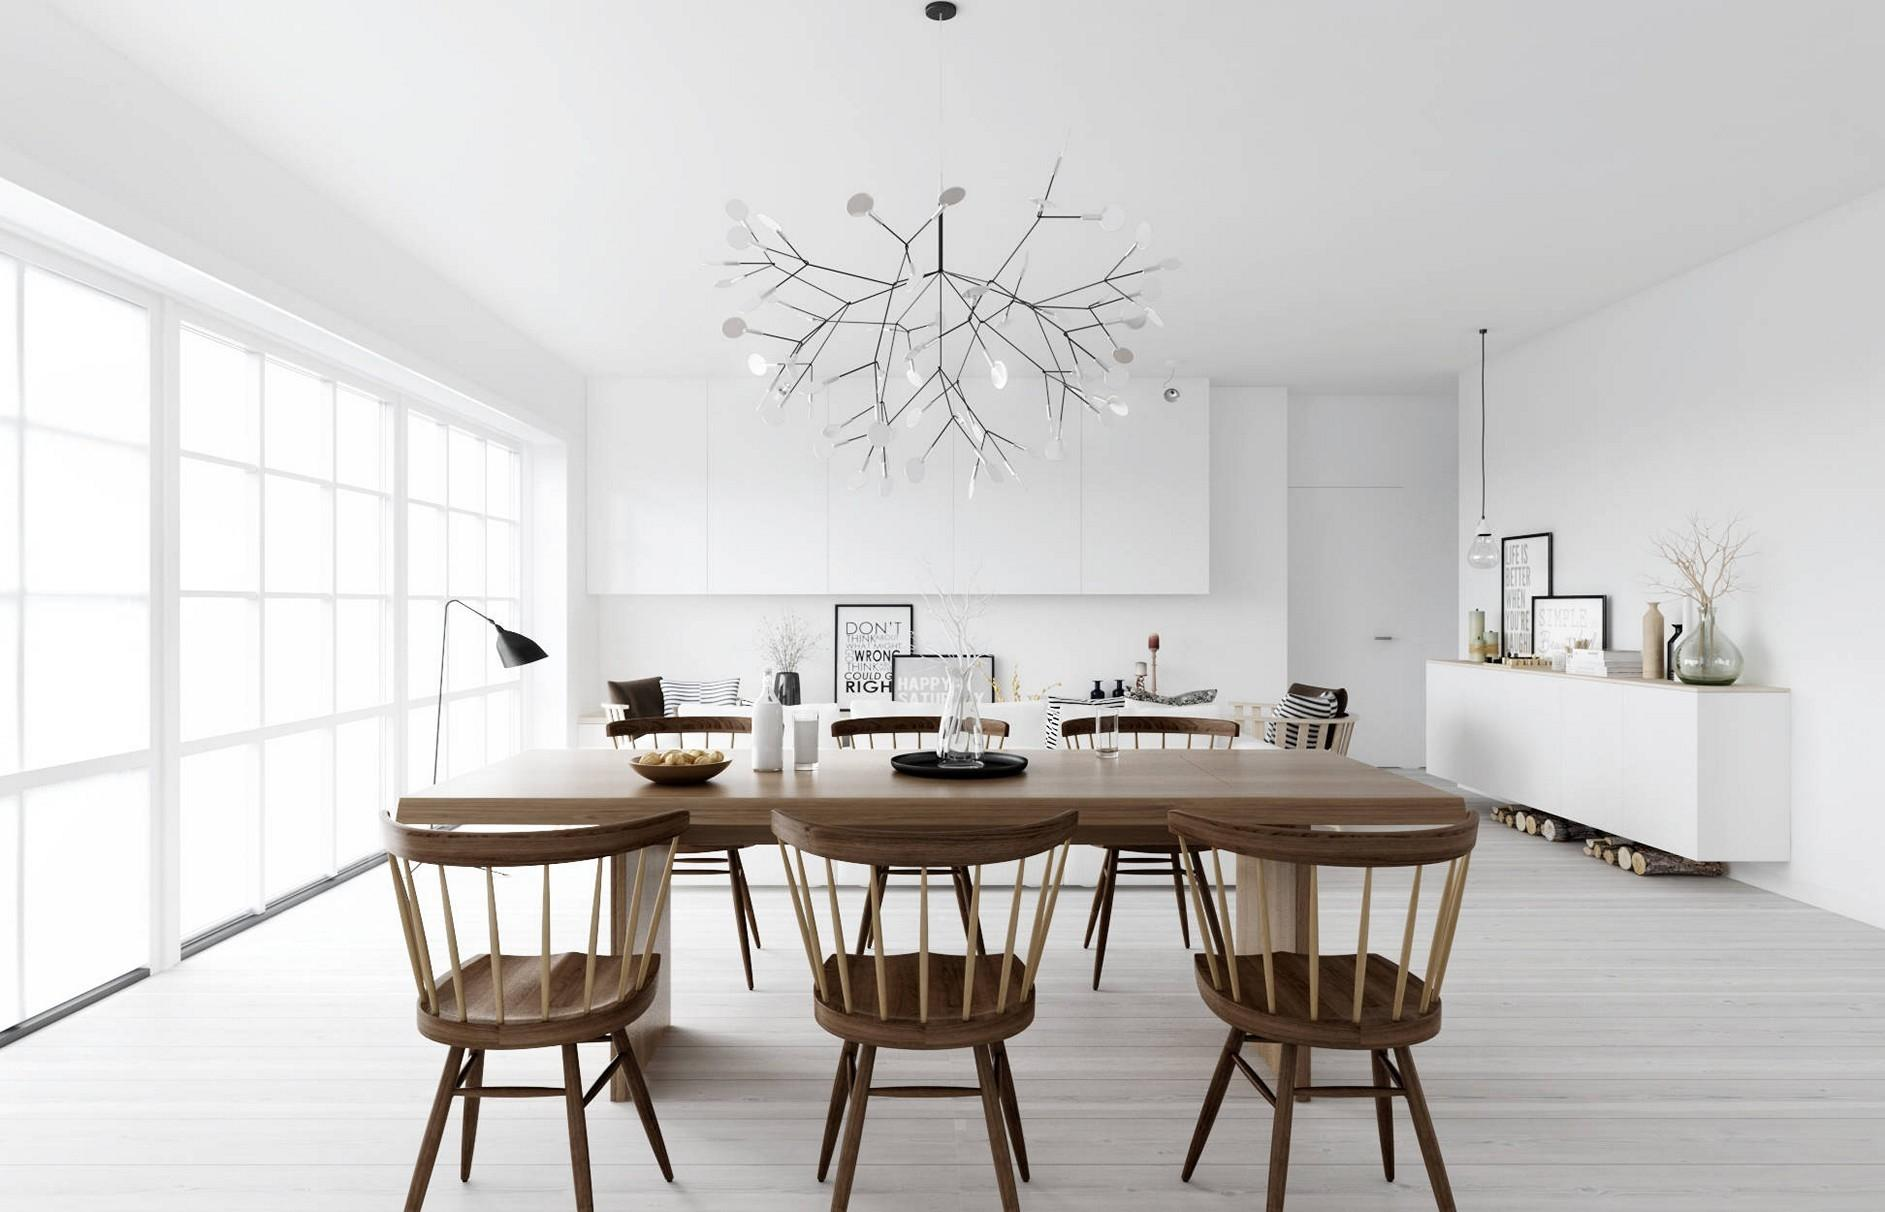 Metallic sputnik chandelier lends a rustic appeal with Scandinavian wood finishes in a living room